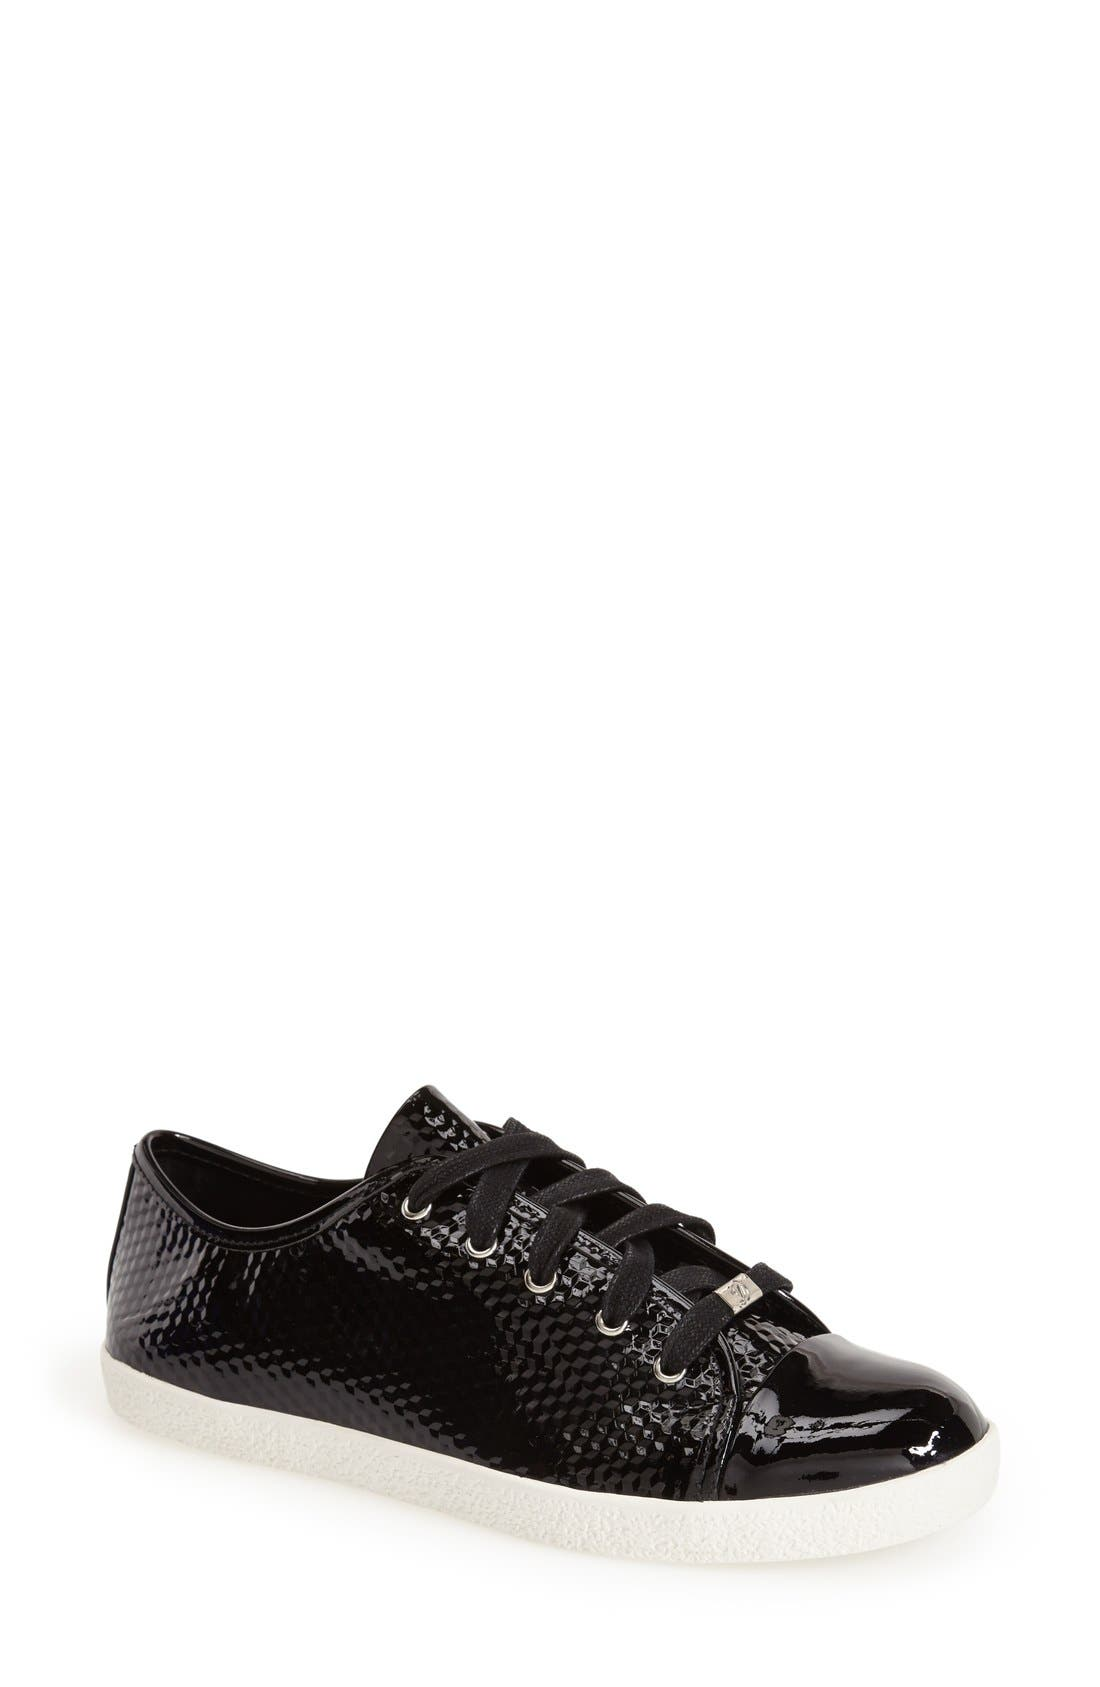 Main Image - Delman 'Magie' Low Top Sneaker (Women)